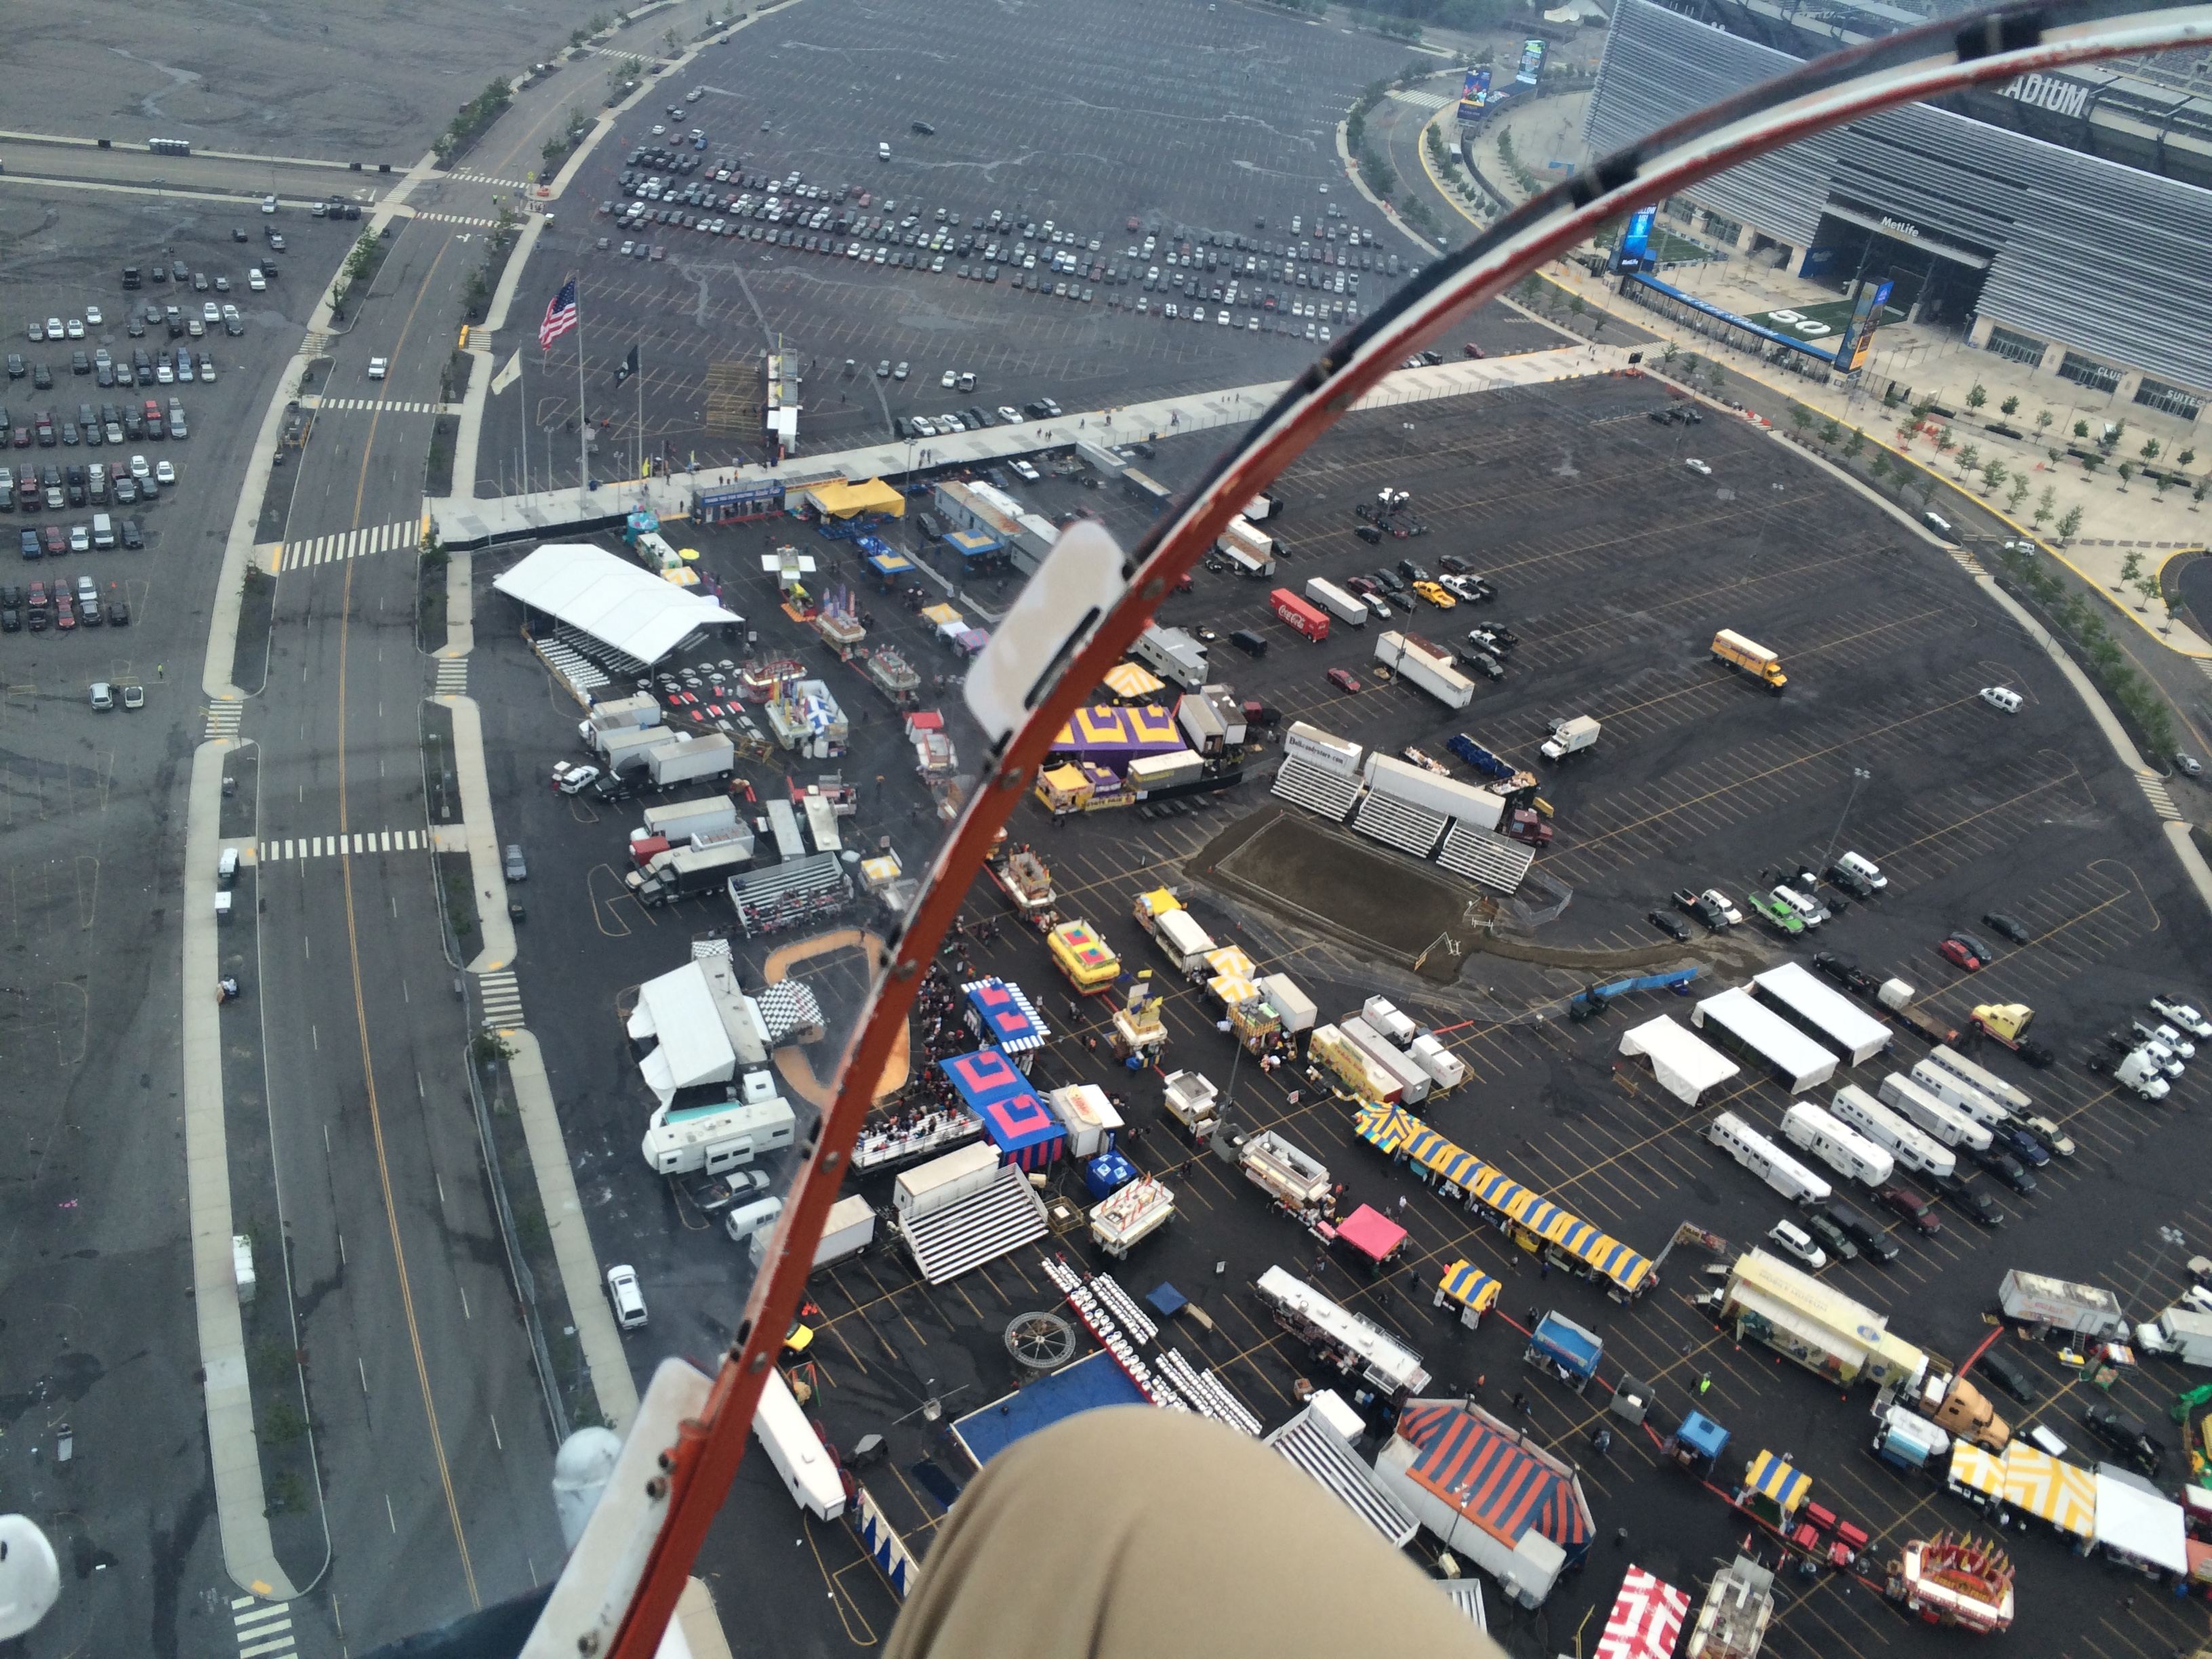 My view from inside the Batcopter, flying above the Meadowlands earlier this year.